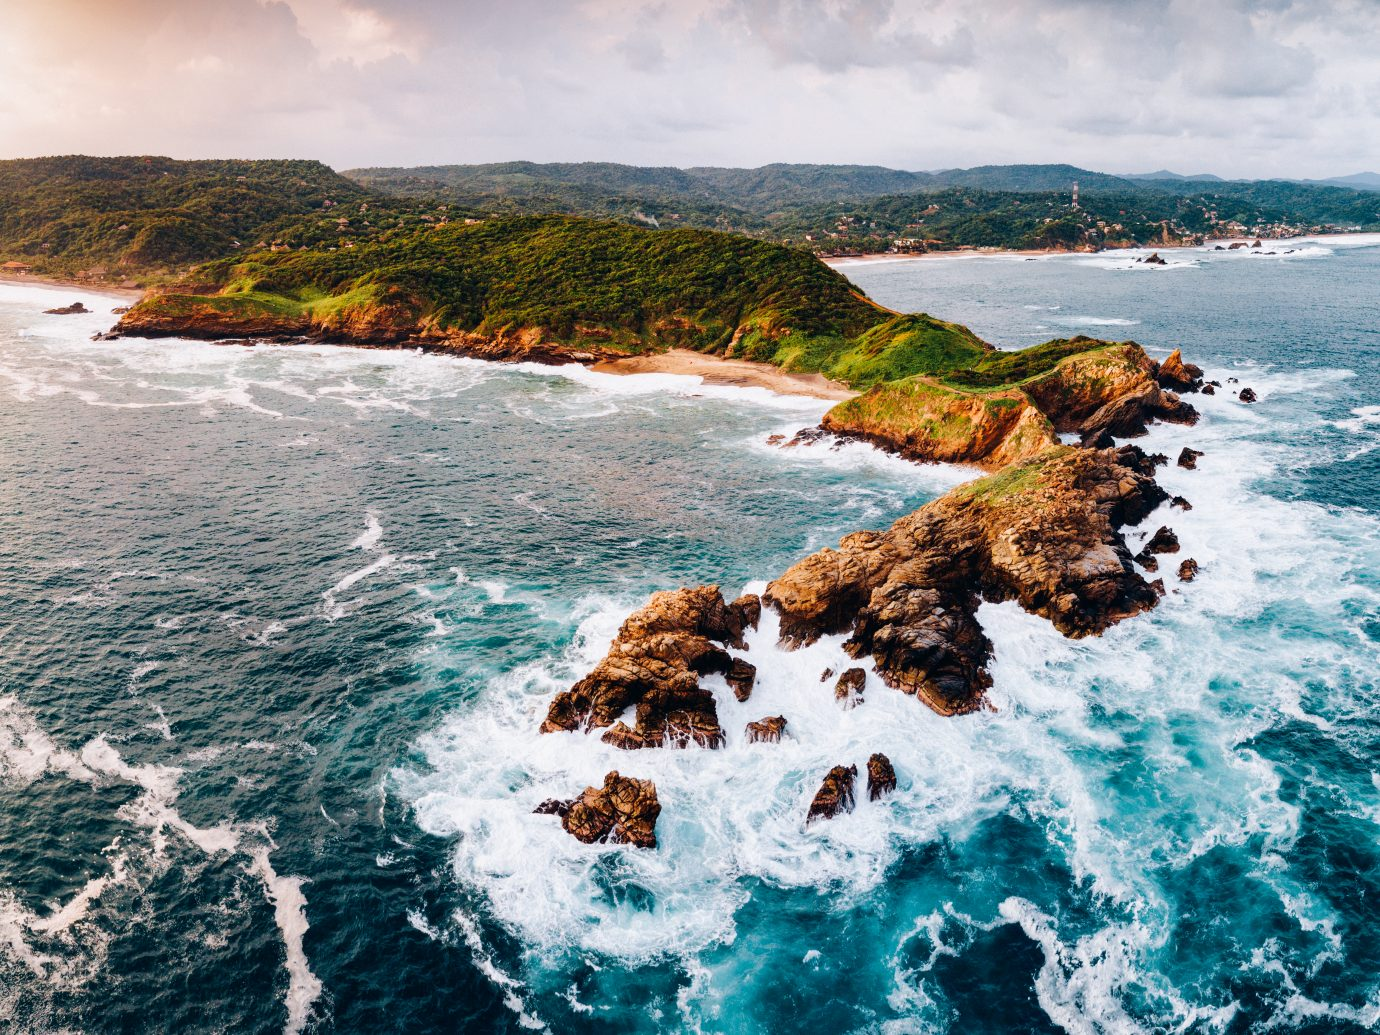 Panoramic Aerial view of Punta Cometa in Oaxaca Coast, Mexico